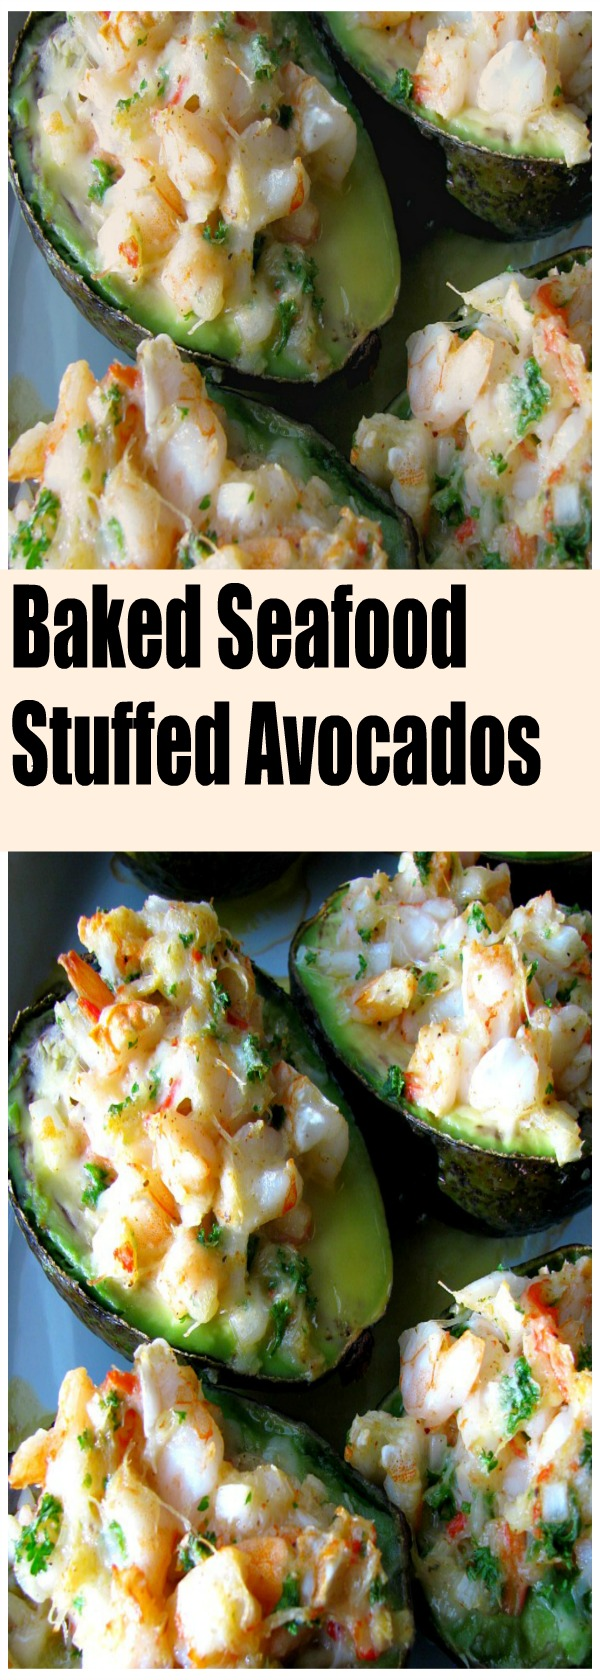 Crab and shrimp filled Baked Seafood Stuffed Avocados make an extraordinary Sunday or special occasion brunch entree, or appetizer before a special meal.